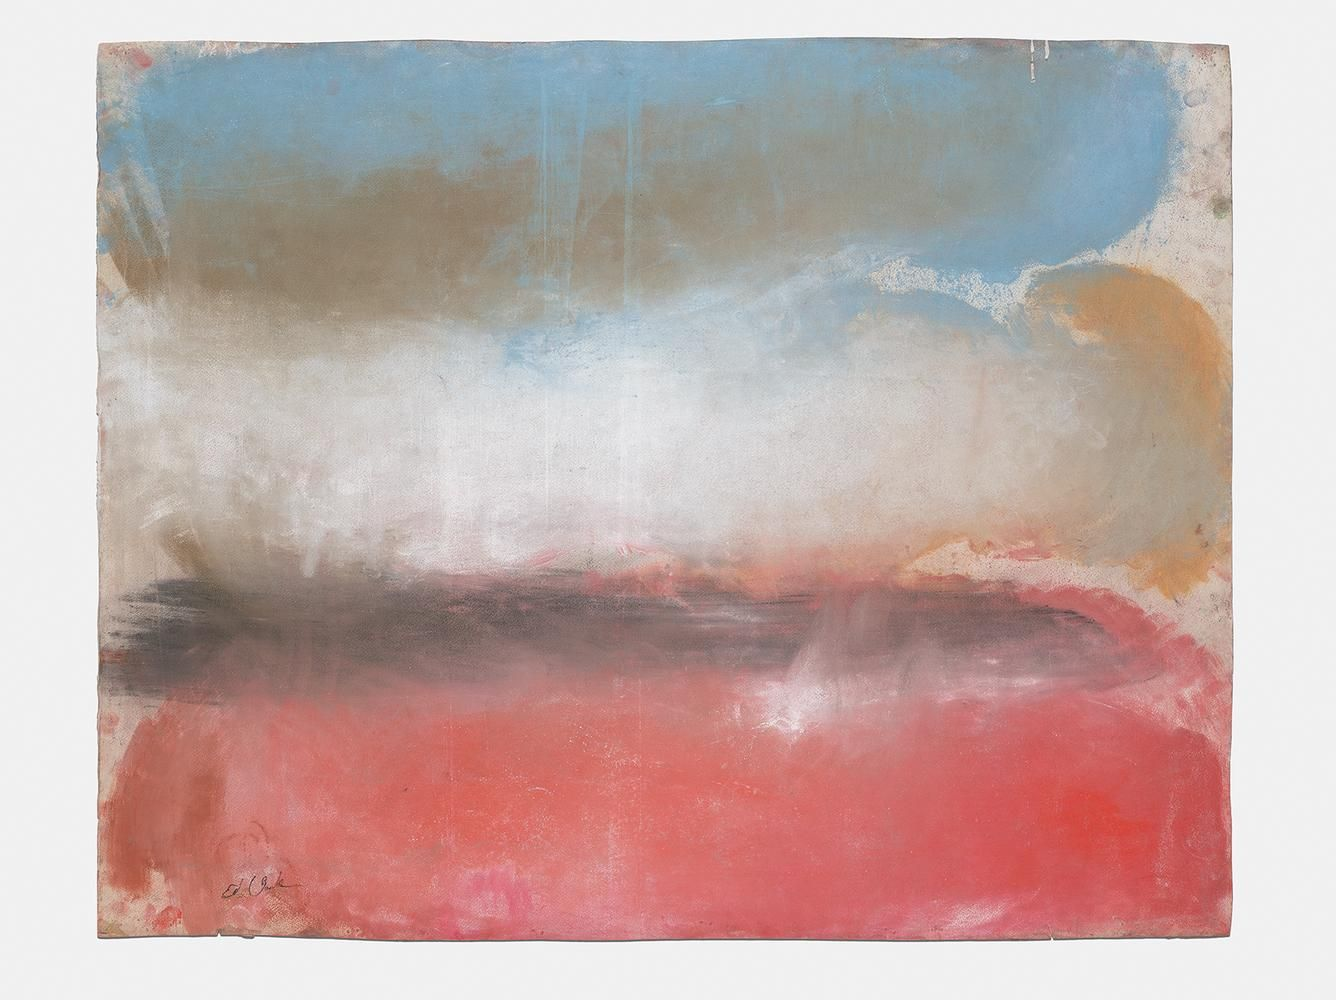 Ed Clark Untitled 2013 dry pigment on paper 38 3/8 x 48 inches (96.5 x 121.9 cm)